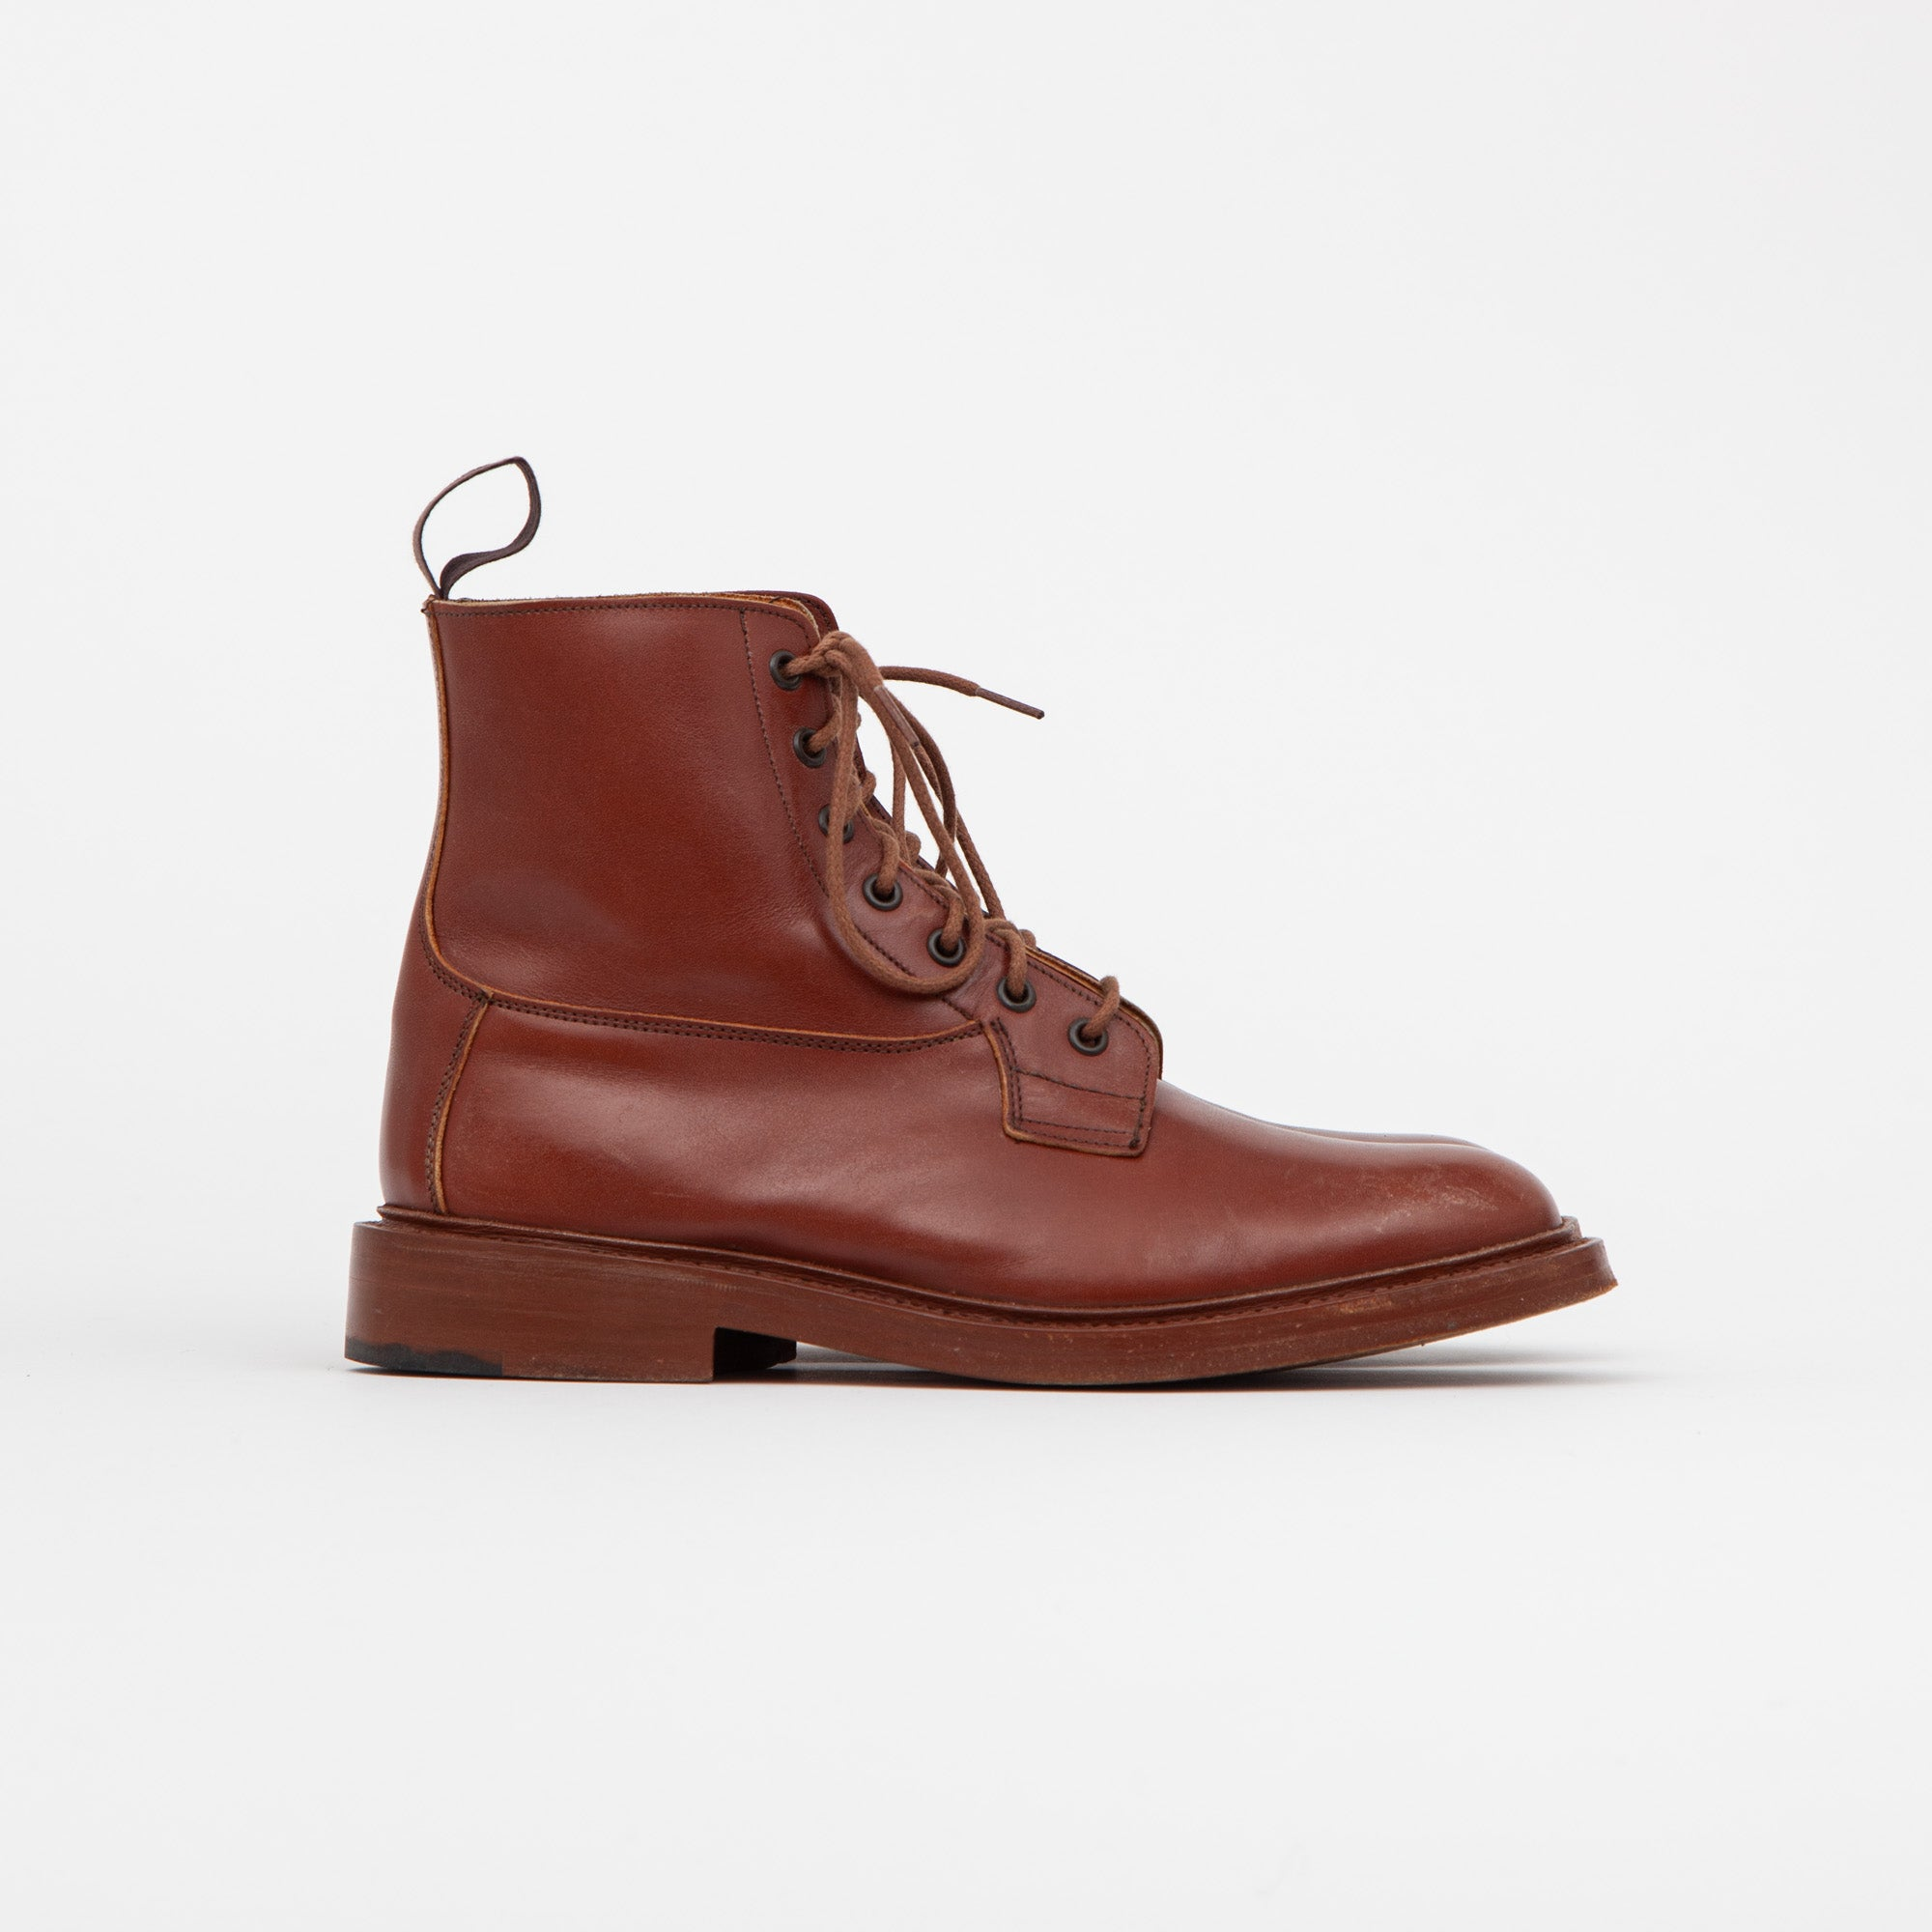 Tricker's Burford Leather Boots